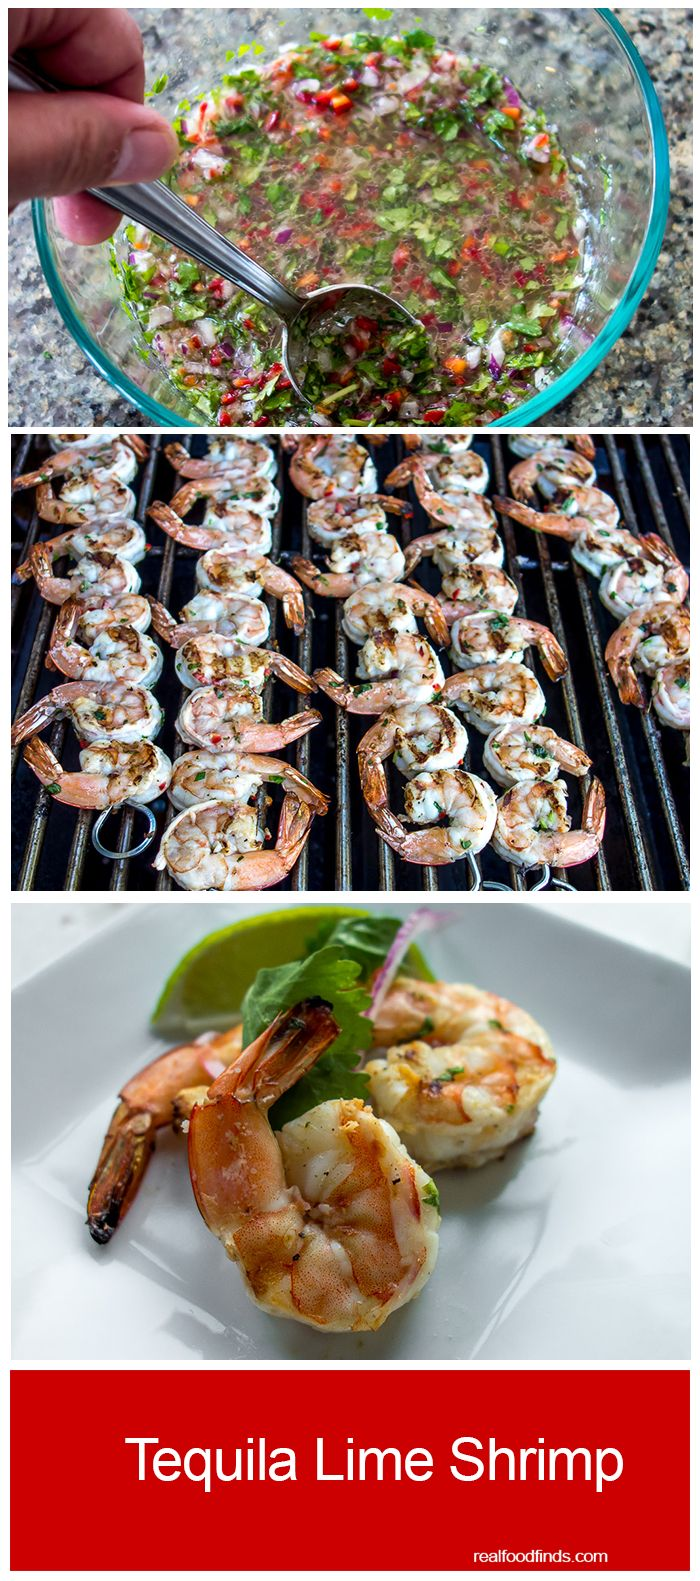 Tequila Lime Shrimp by Real Food Finds